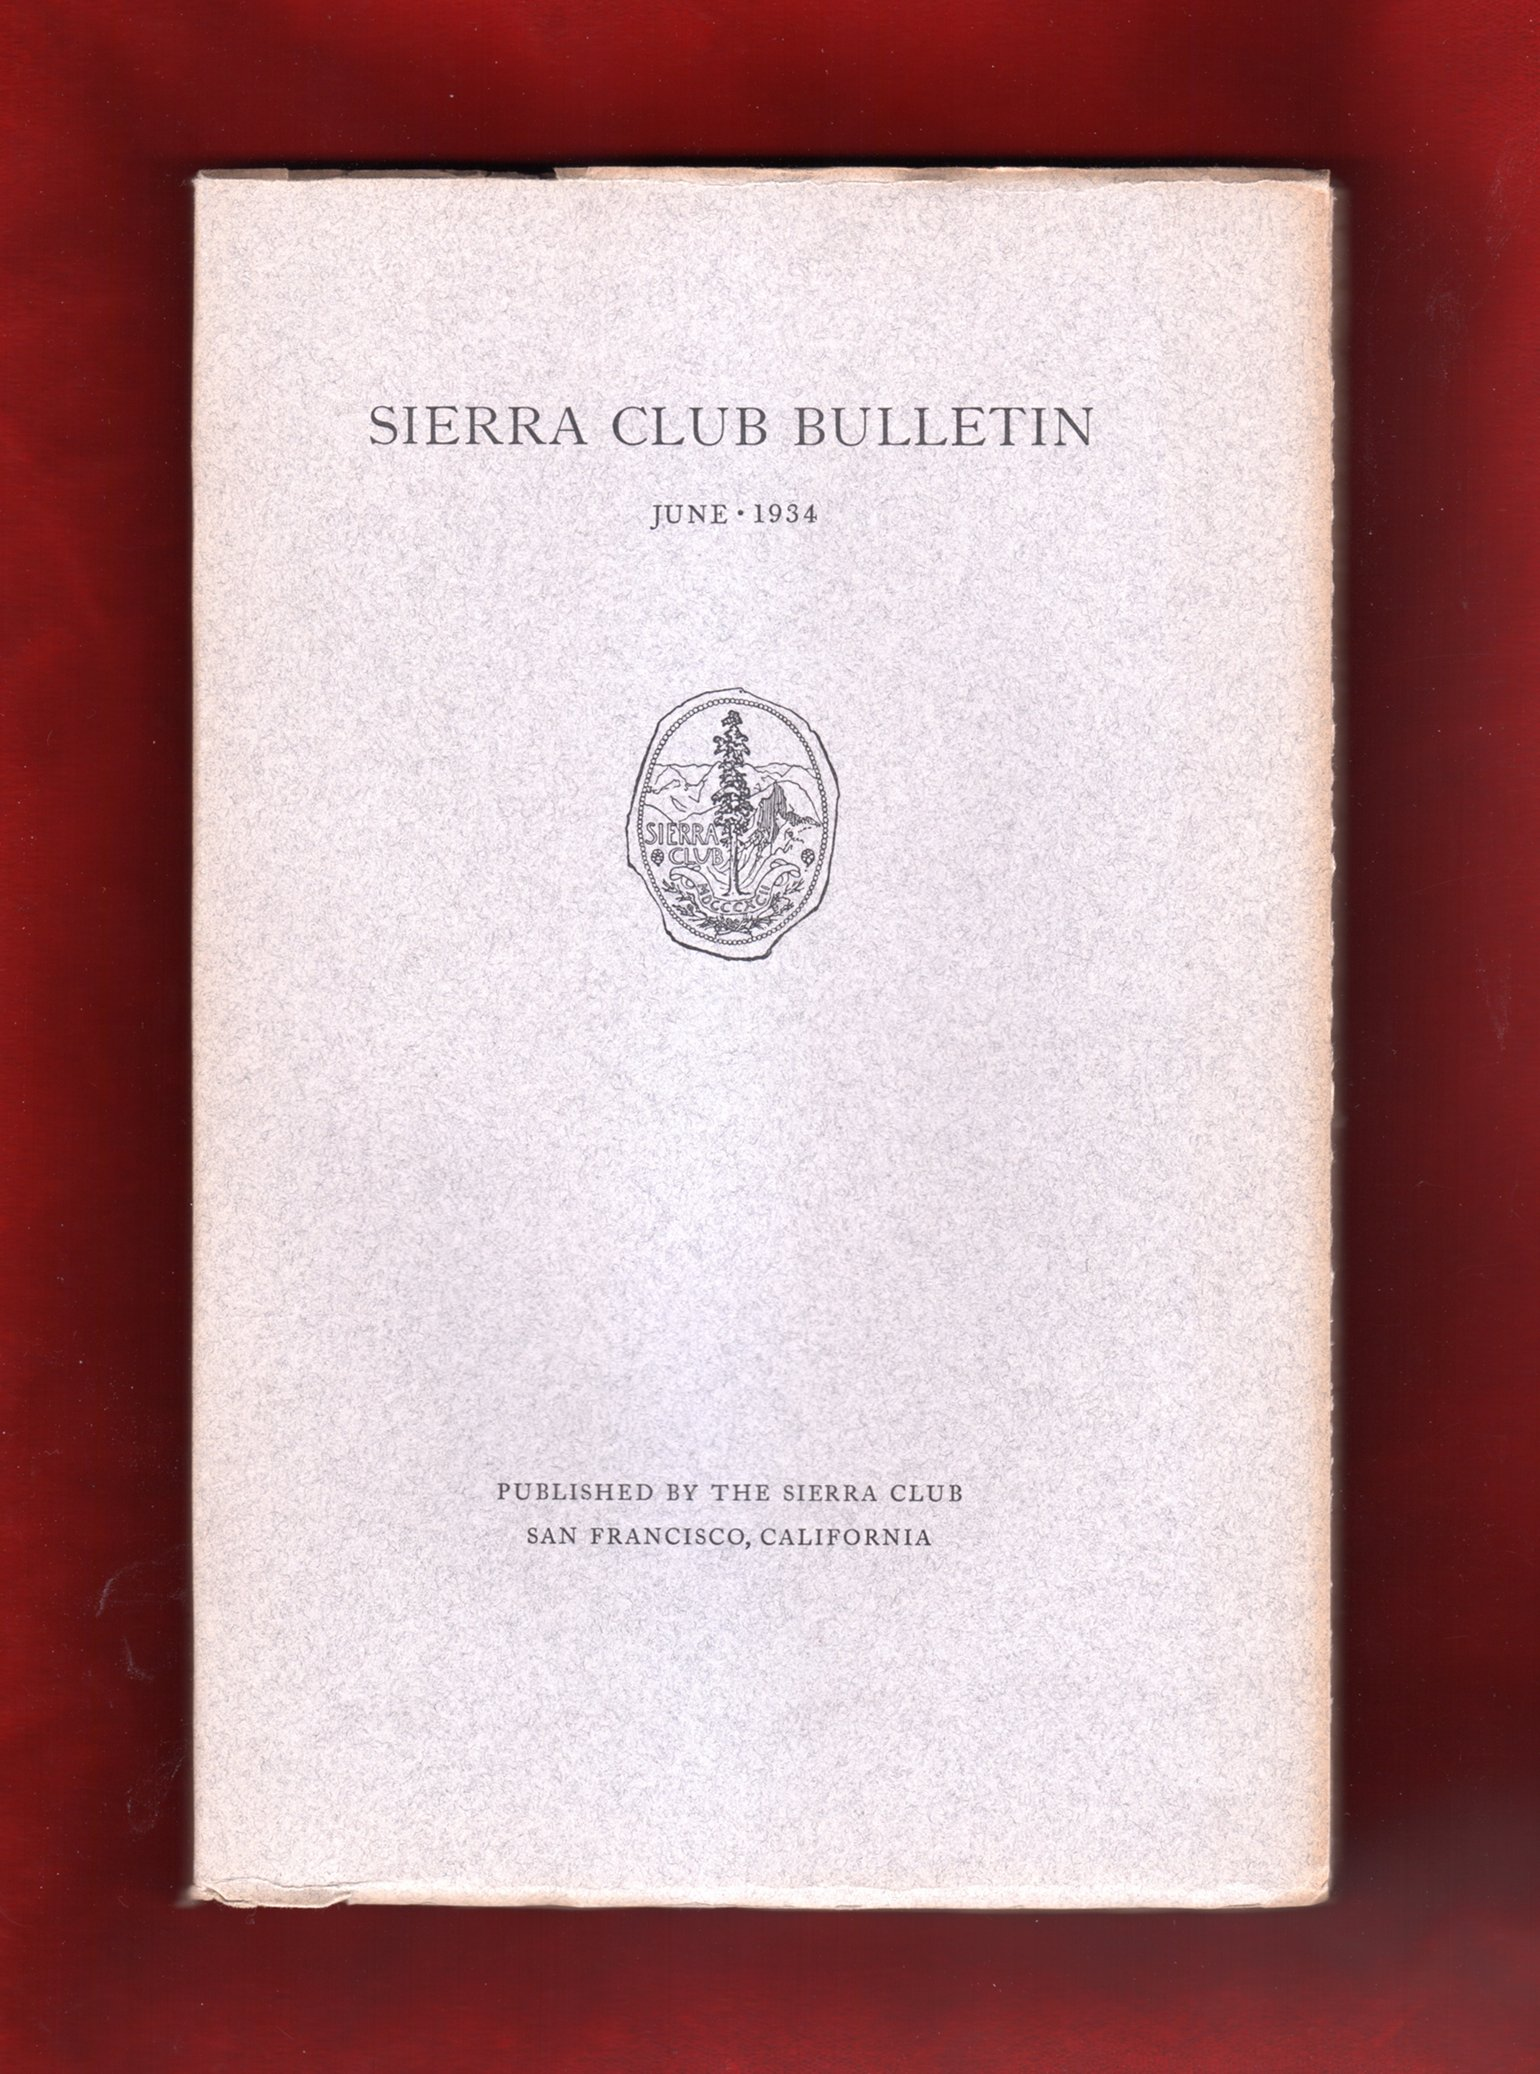 sierra club bulletin june 1934 9 ansel adams photographs john muir ralph waldo emerson in yosemite mount humphreys the devils crags north palisade three teeth of sawtooth ridge